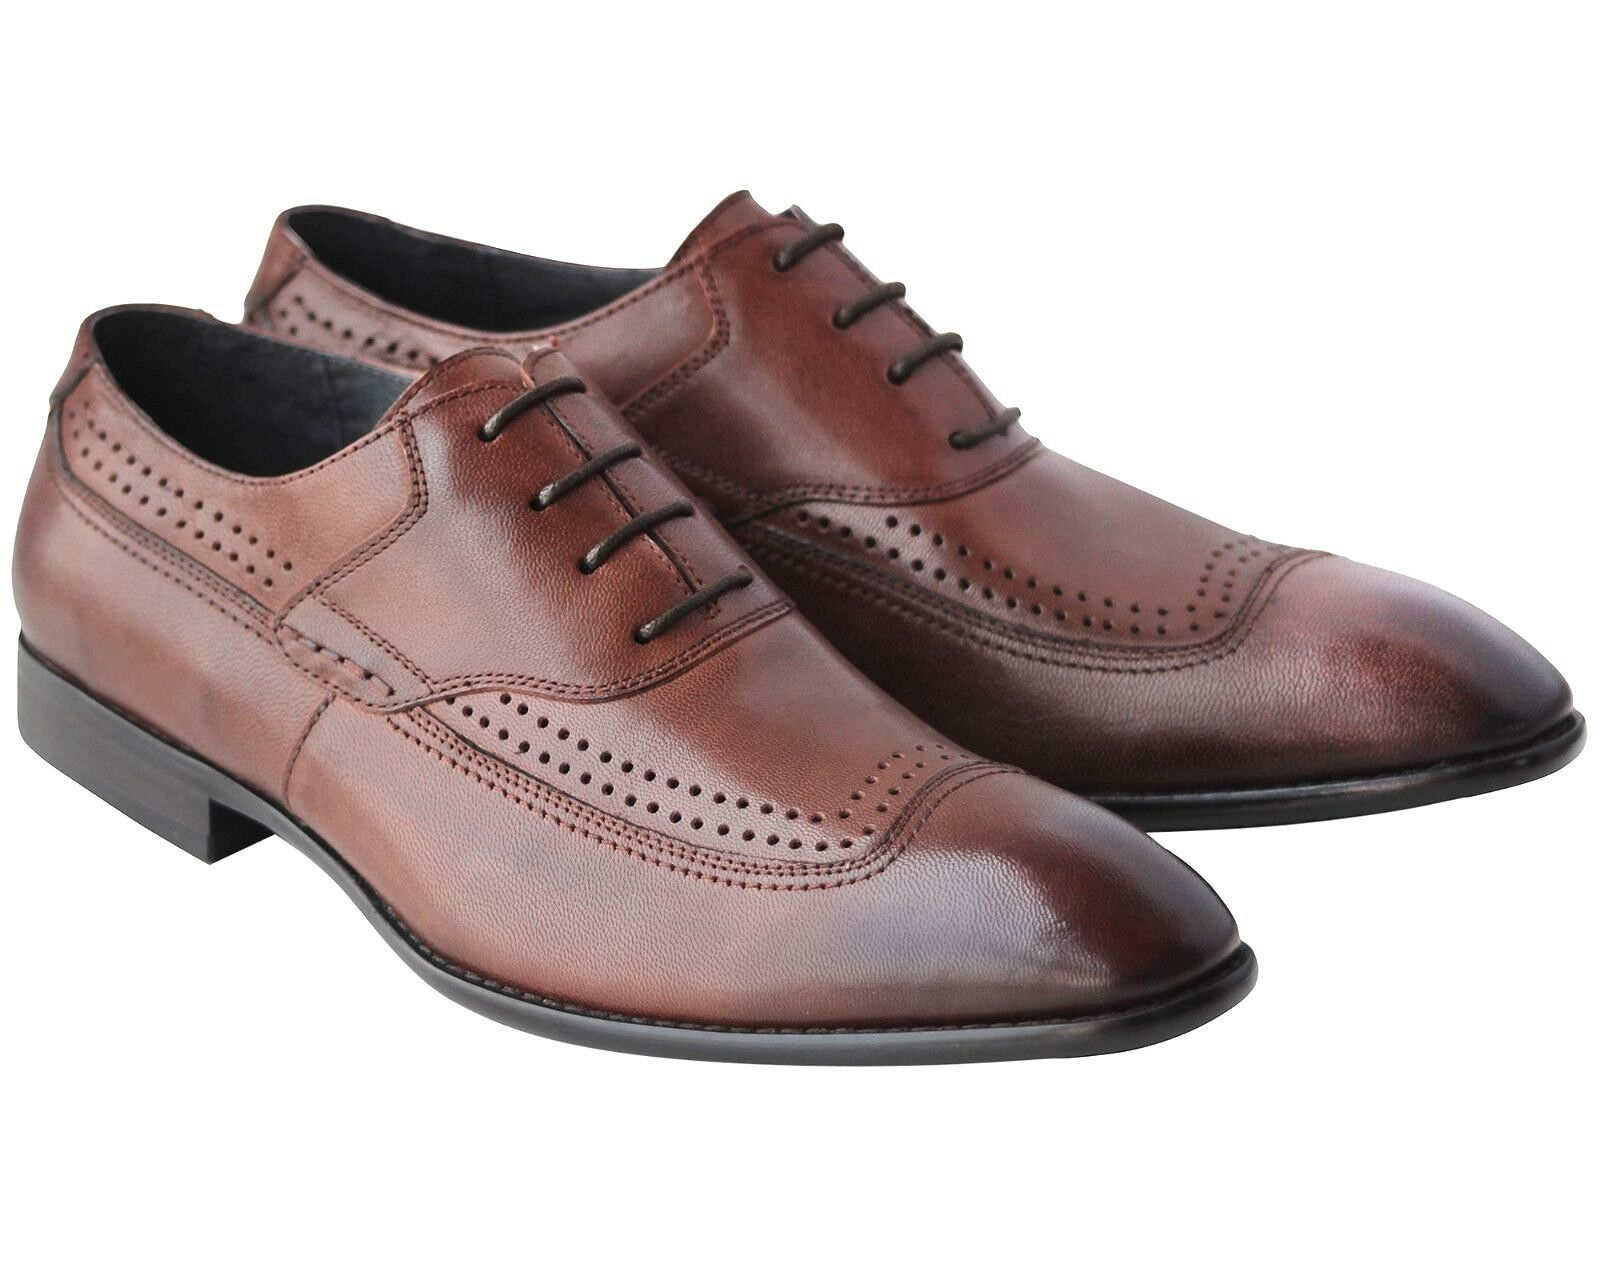 262714fd694 878 MENS BROWN SMART SHOES REAL LEATHER LACE OFFICE WORK UP WEDDING  nvswmn2574-Formal Shoes